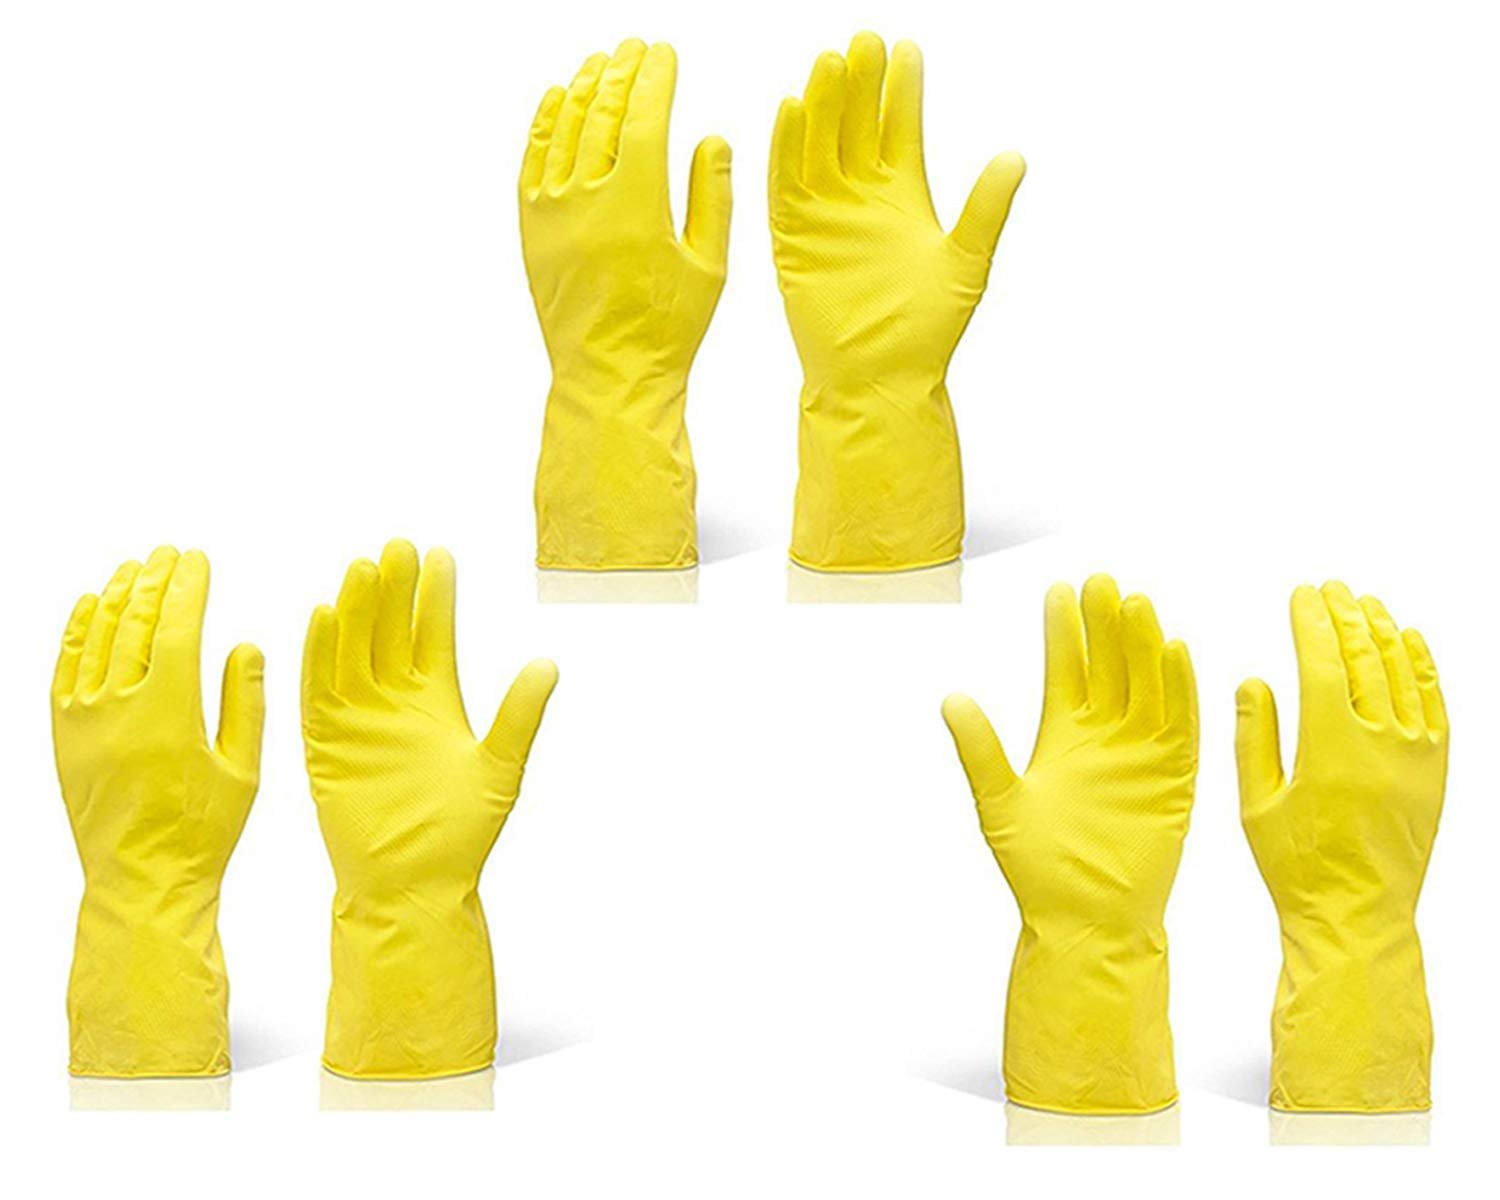 Rubber Hand Gloves Reusable Washing Cleaning Kitchen Garden (Color May Vary) (3 Pairs)